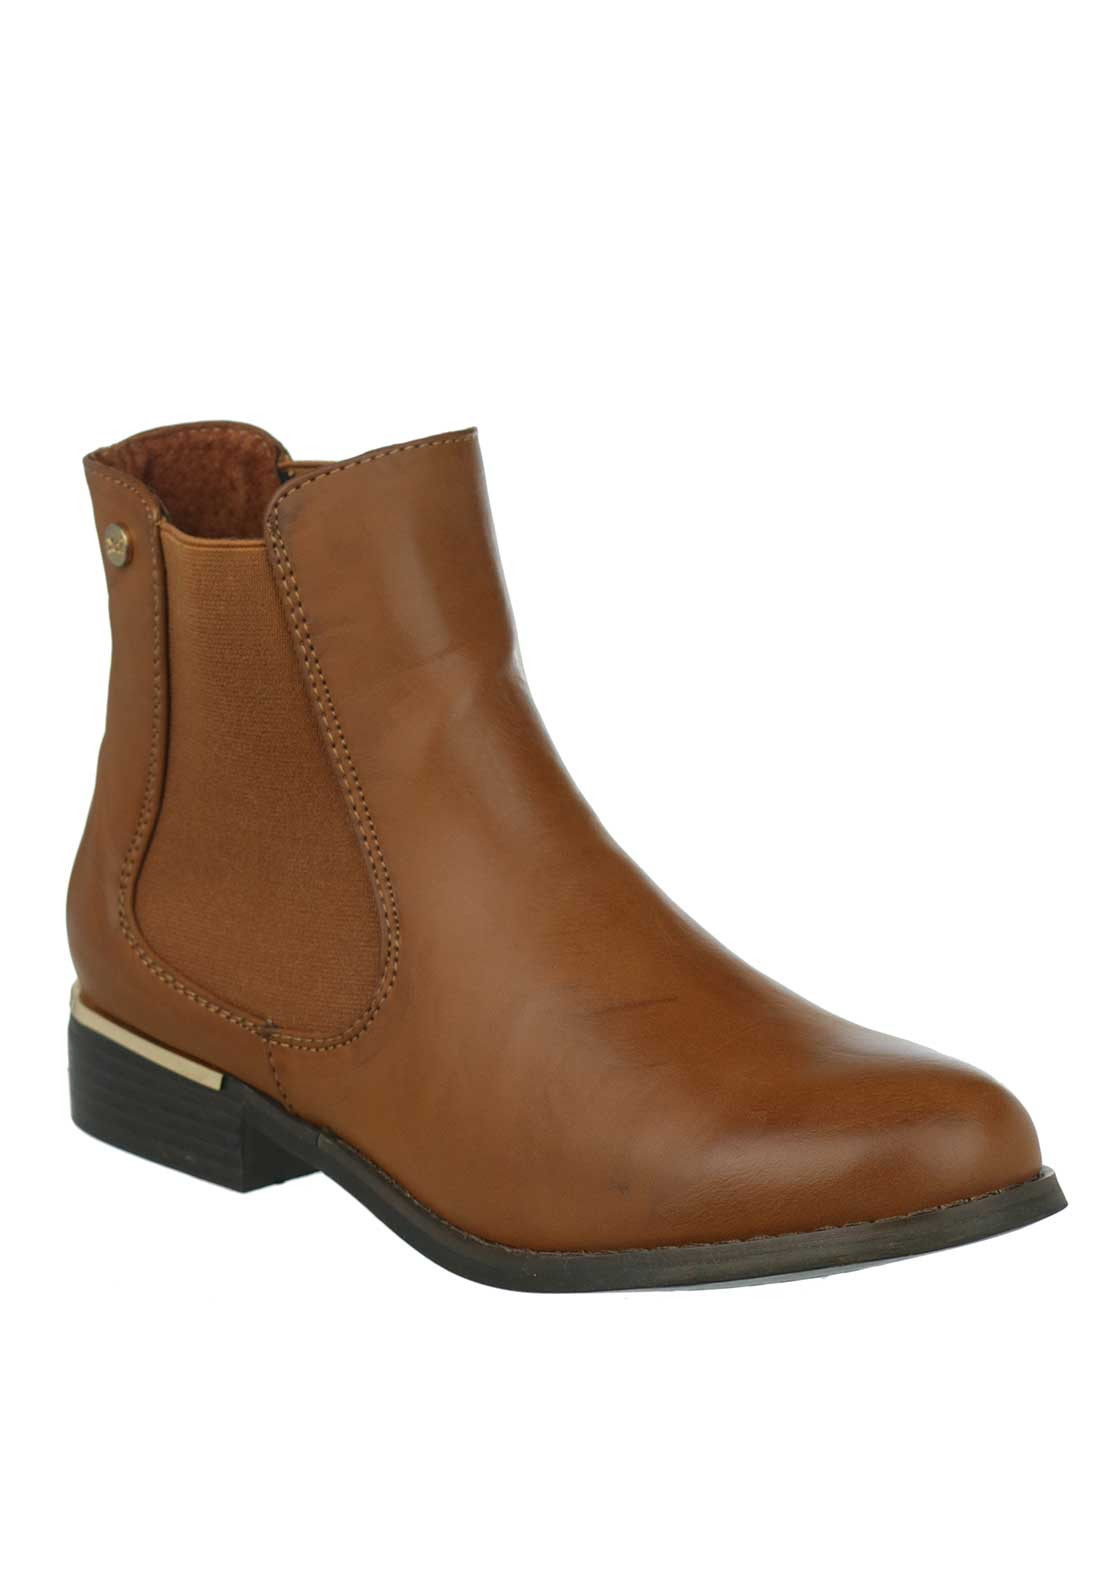 Xti Womens Gold Trim Chelsea Boots, Tan